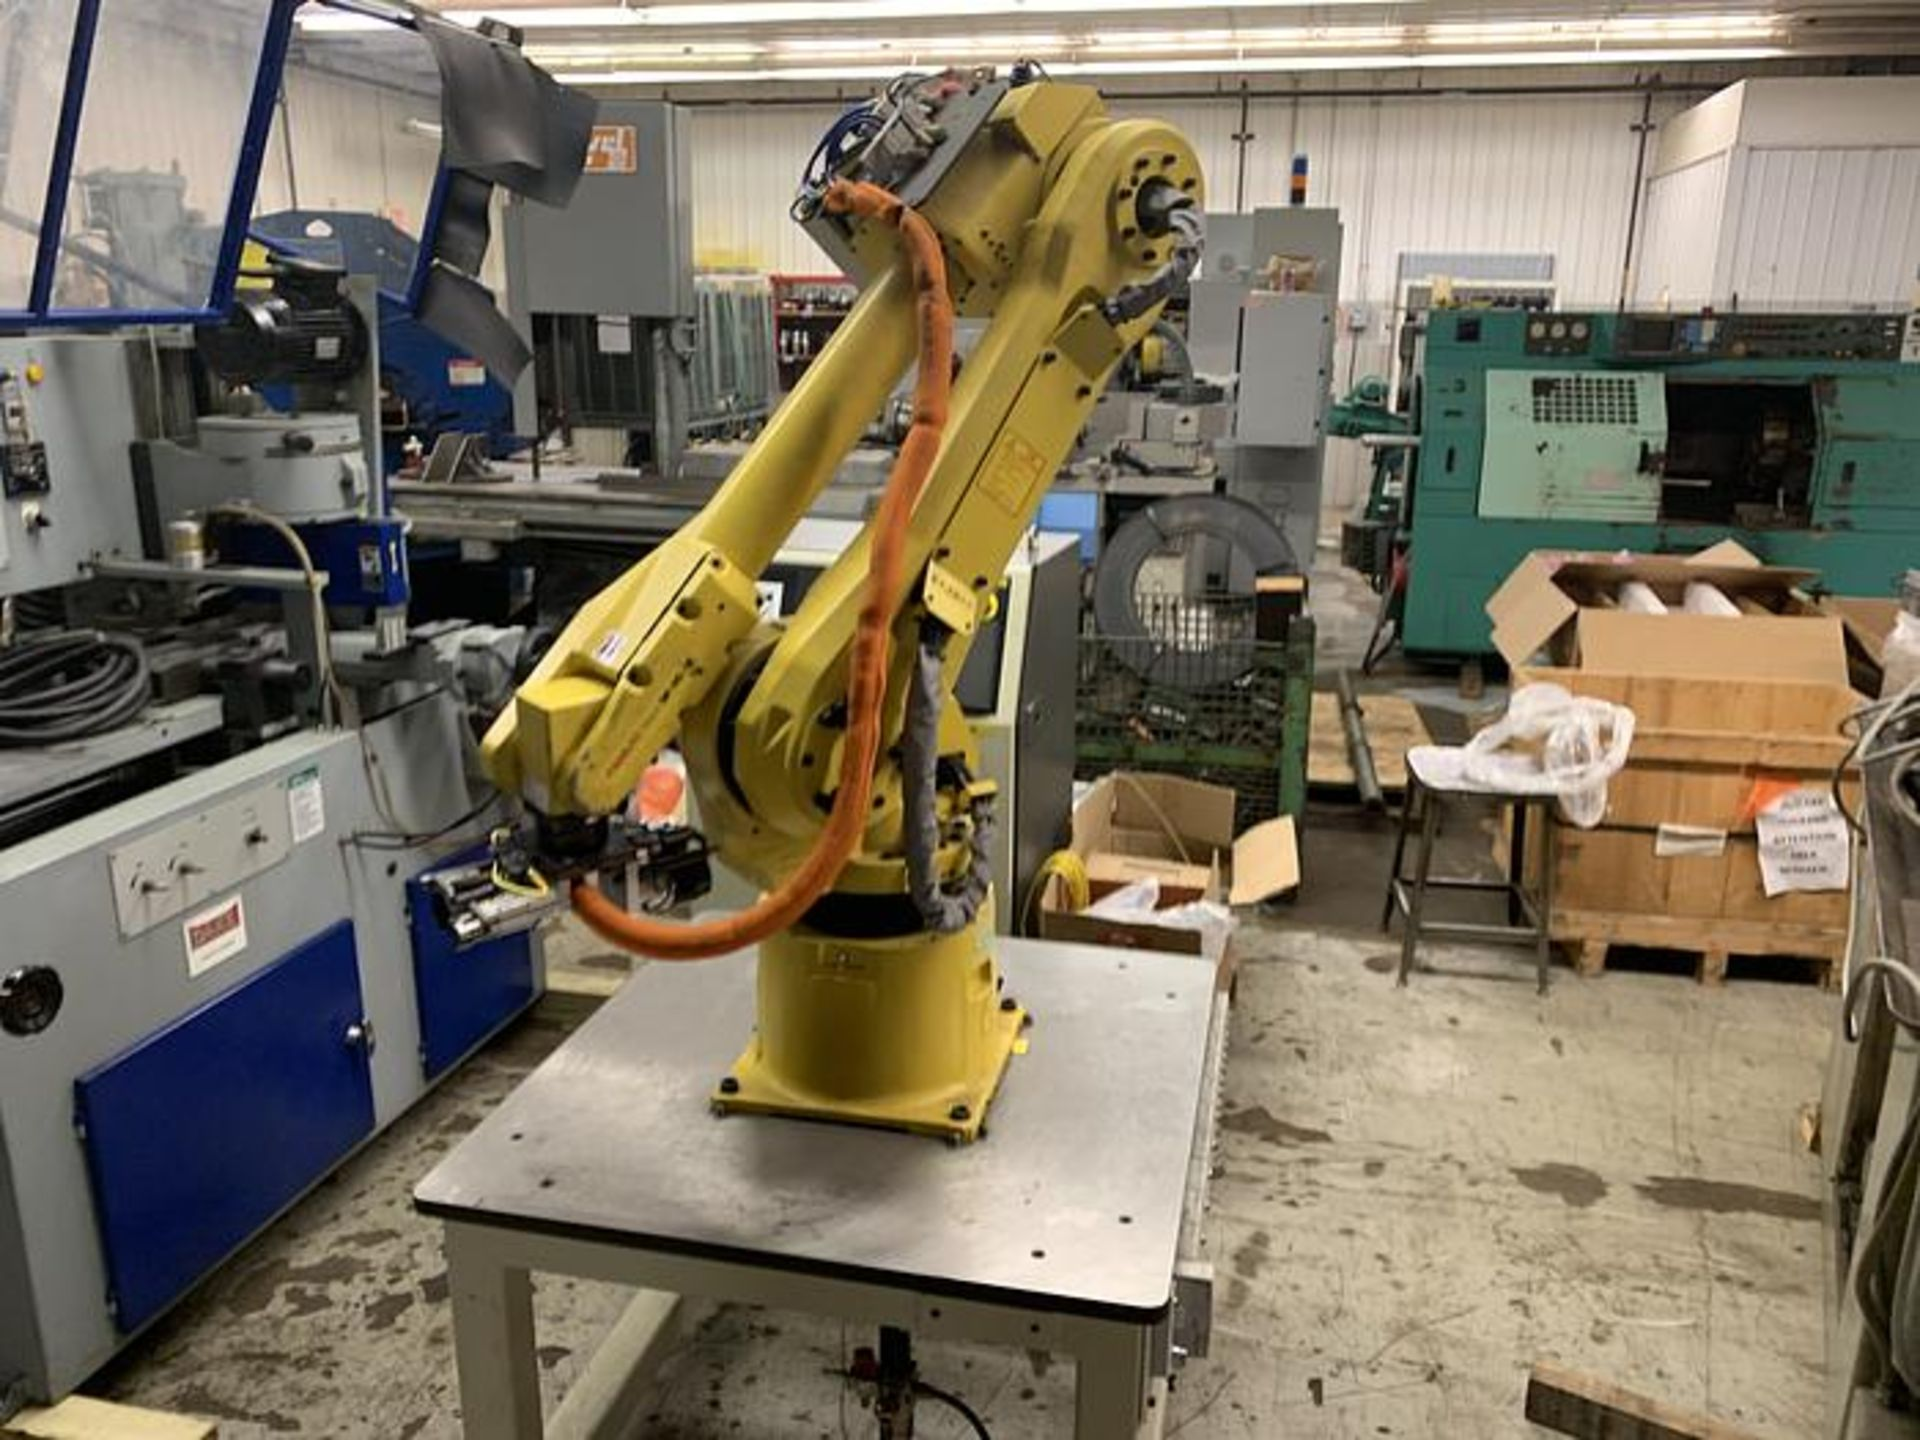 FANUC ROBOT M16iB/10L WITH RJ3iC (R30iA) CONTROLLER, TEACH & CABLES, YEAR 2006, SN 80306 - Image 3 of 17